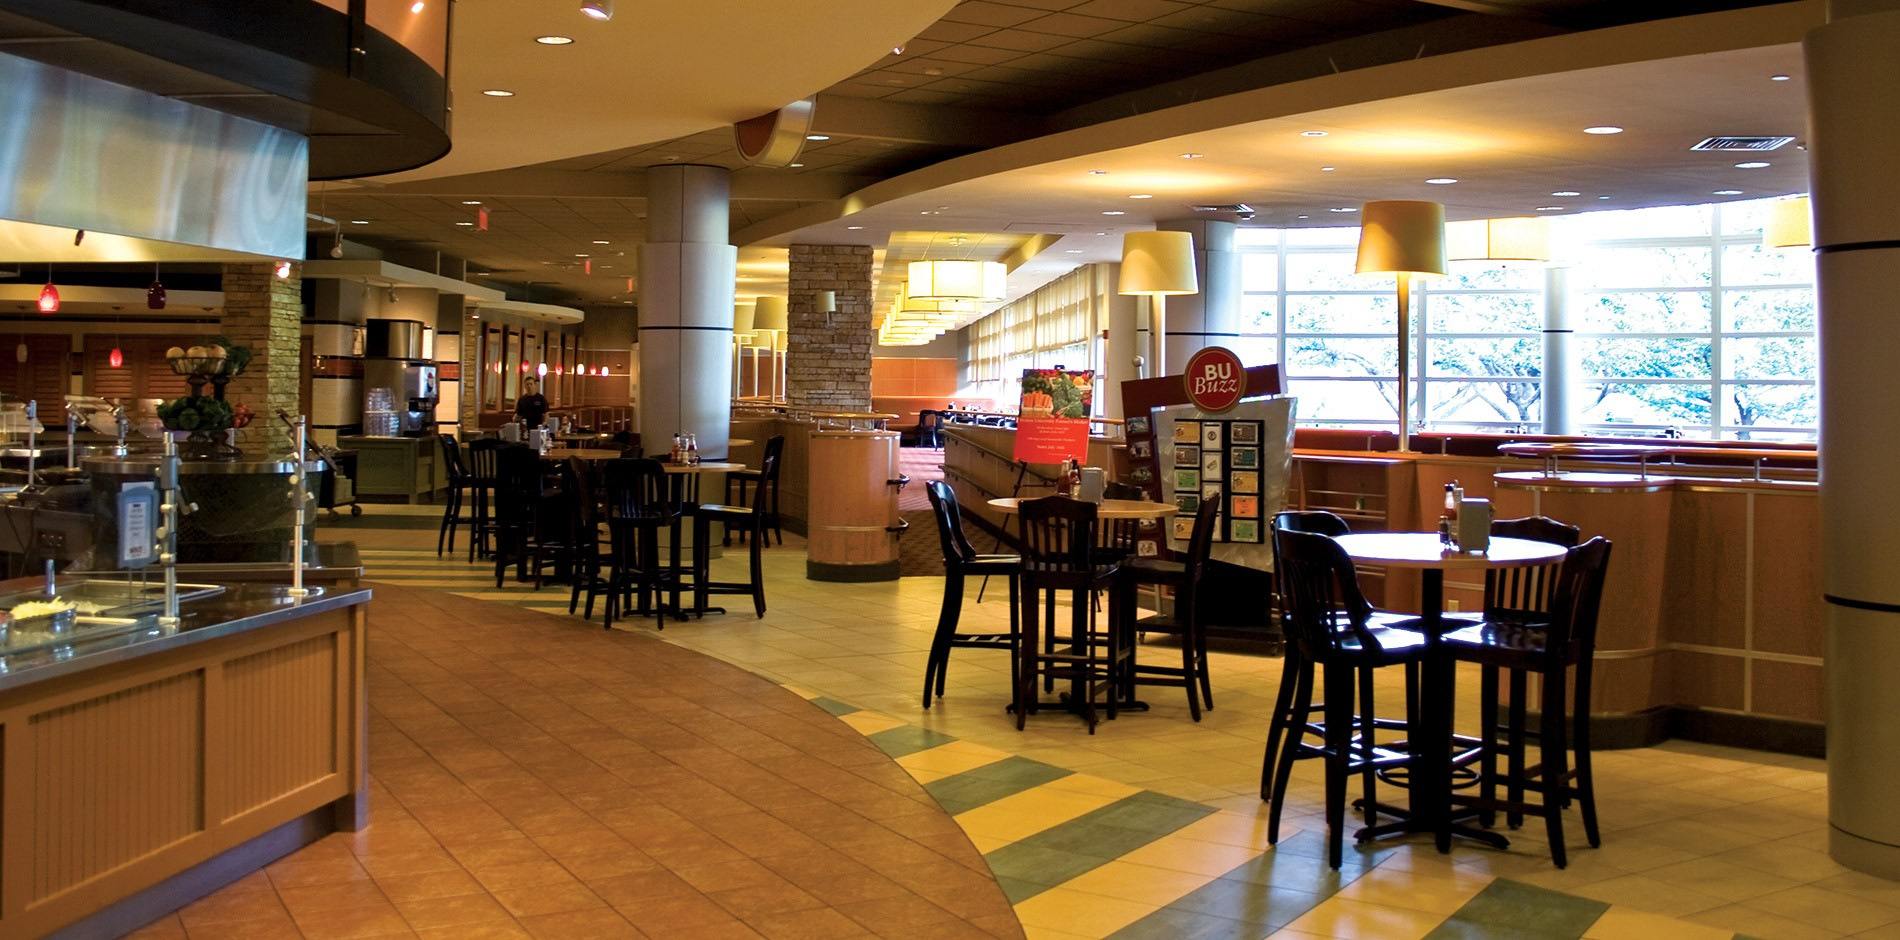 Boston University   Claflin And Sleeper Hall Dining Room Renovation |  Shawmut